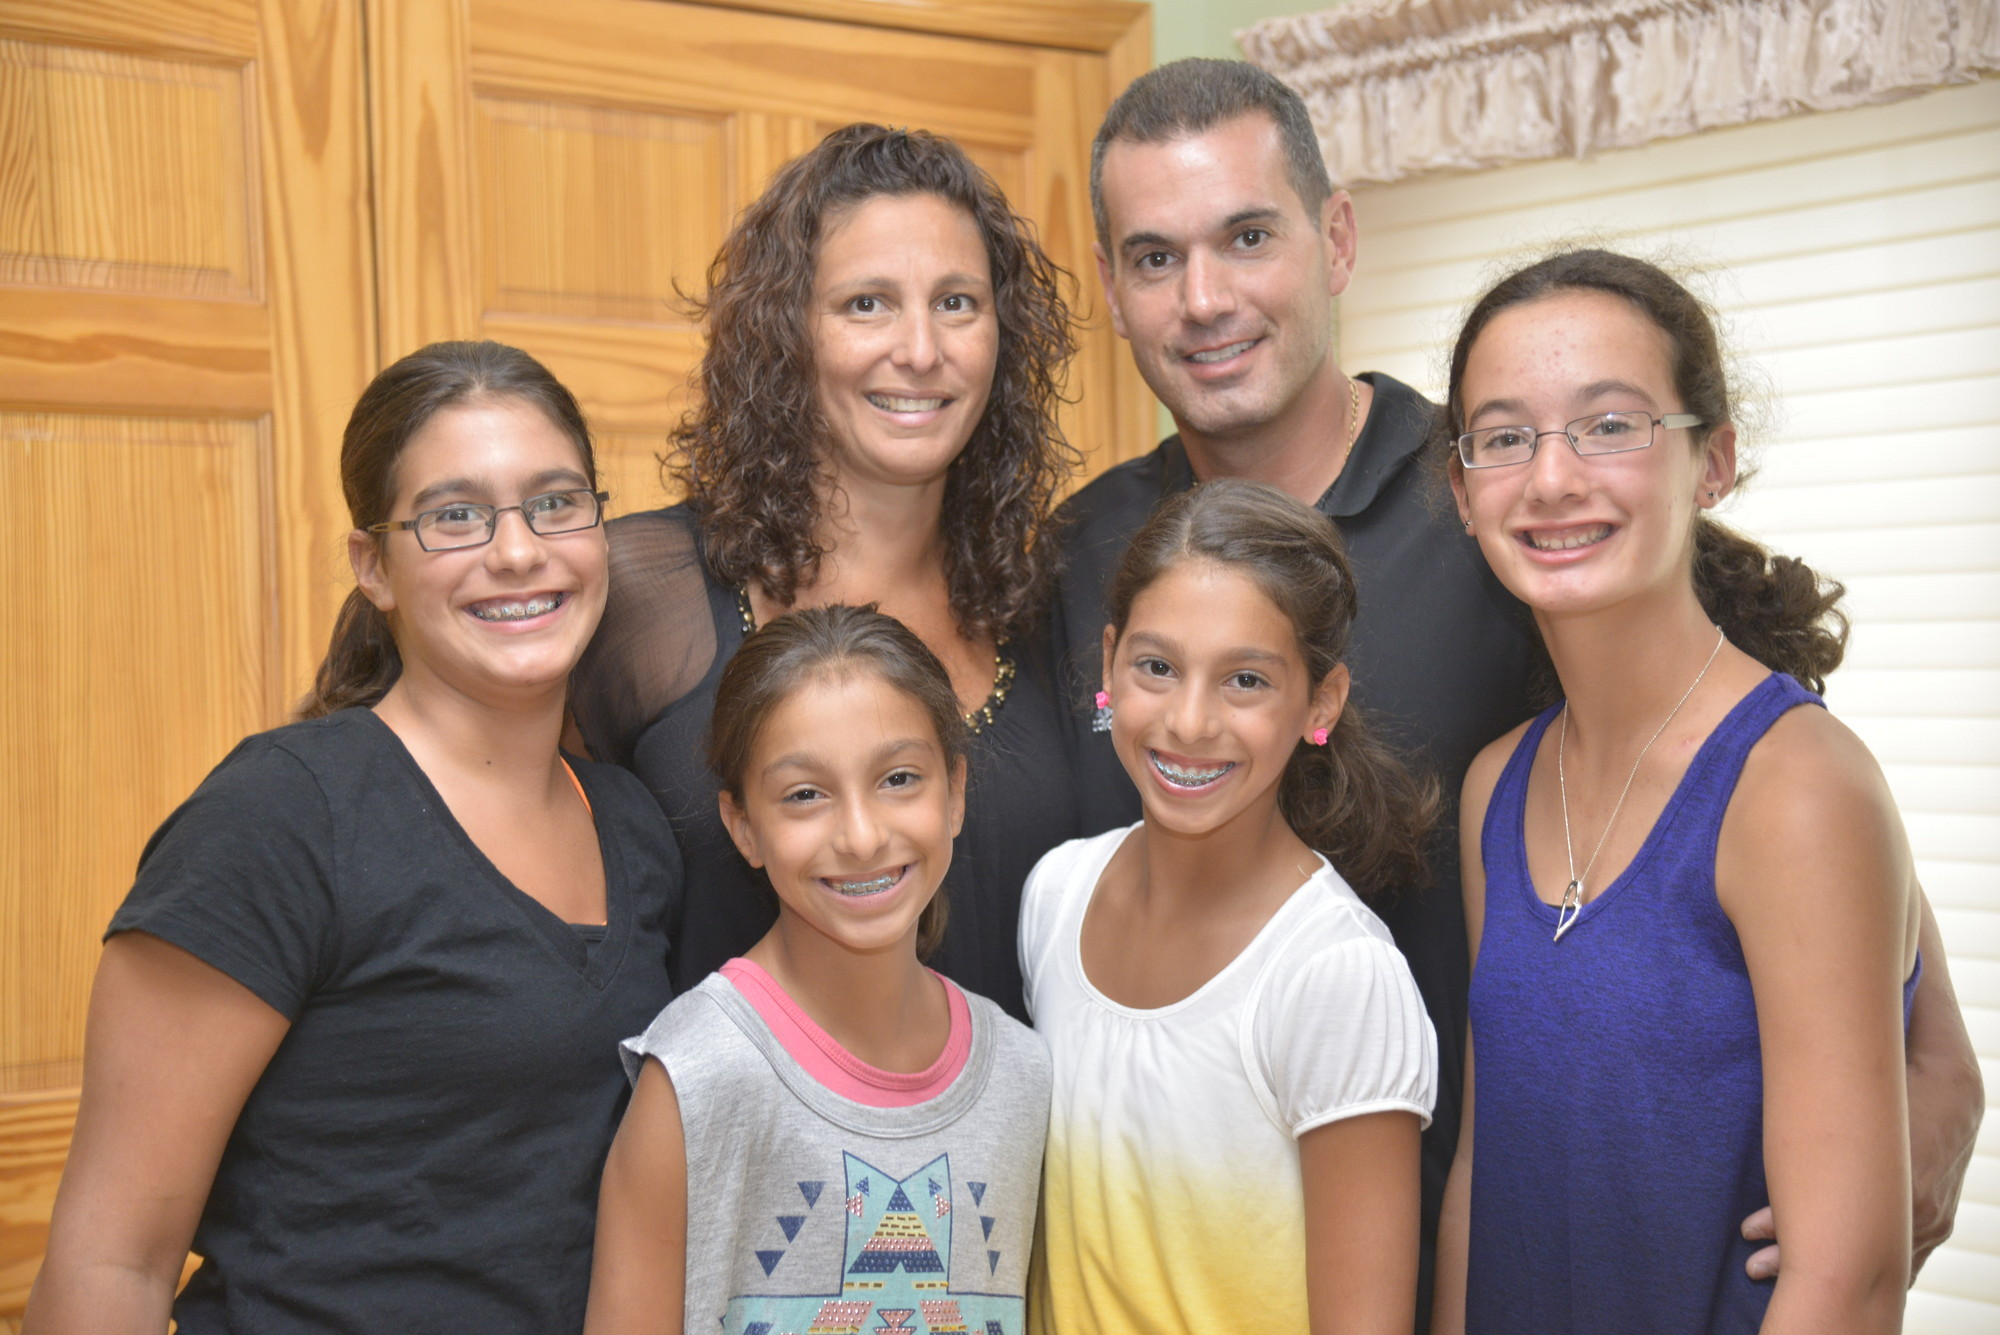 Parents Sue and Joe Cuttone with their daughters in their East Meadow home.